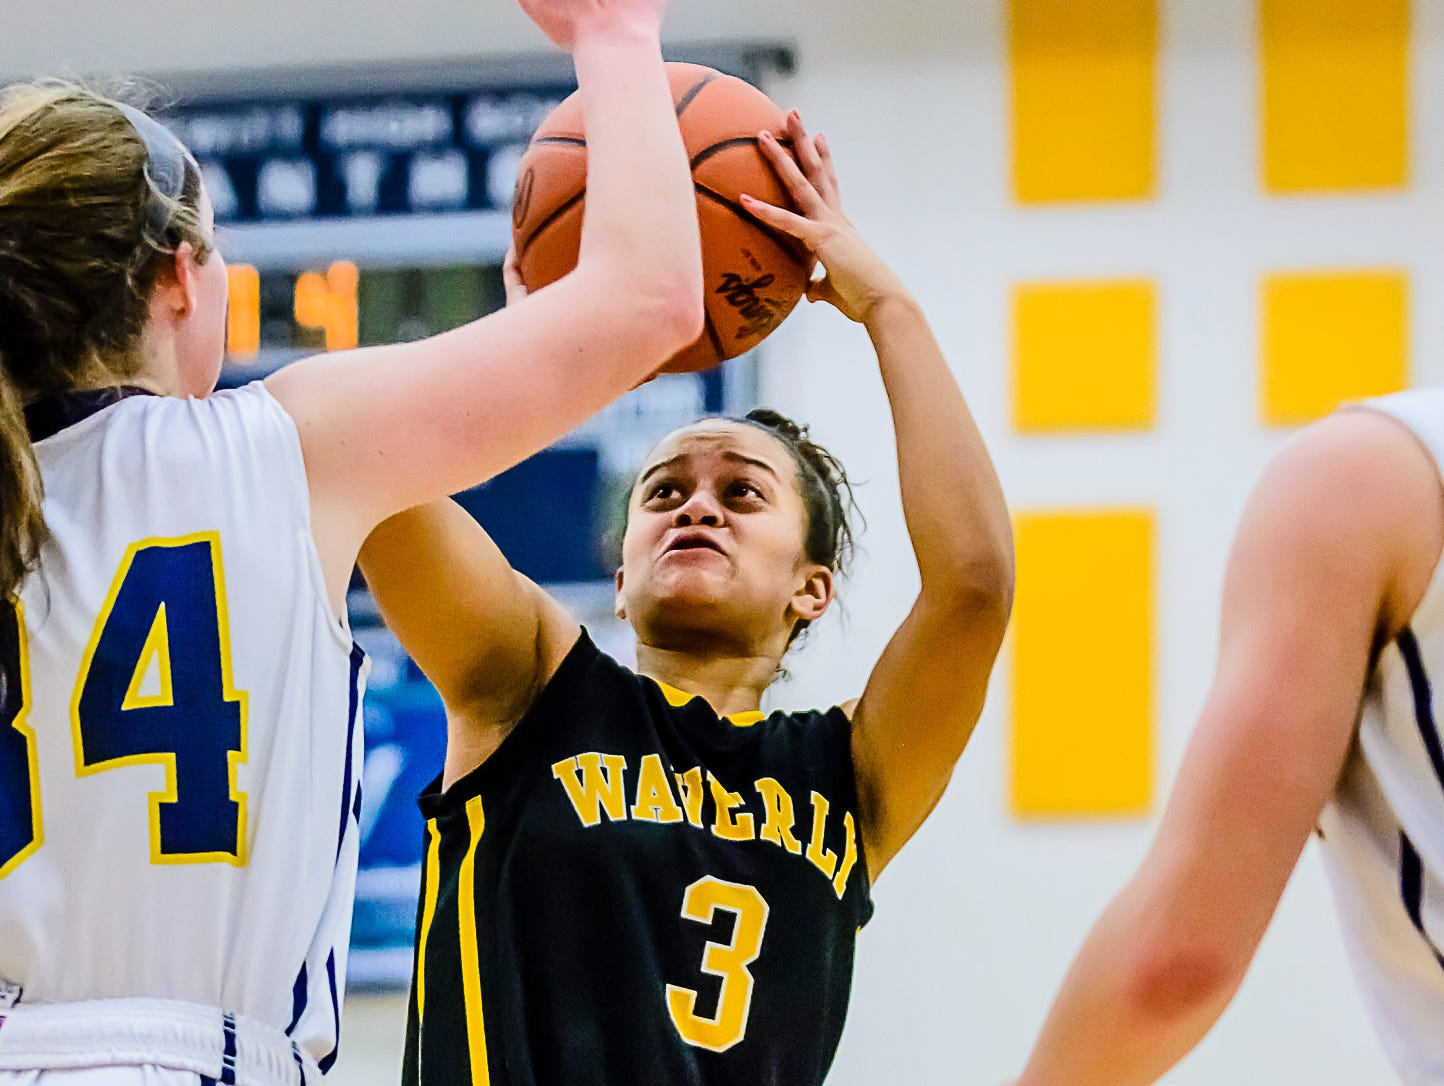 Jazlynn Wilcox ,3, of Waverly shoots over Grace George of DeWitt during their game Friday January 6, 2017 in DeWitt. KEVIN W. FOWLER PHOTO